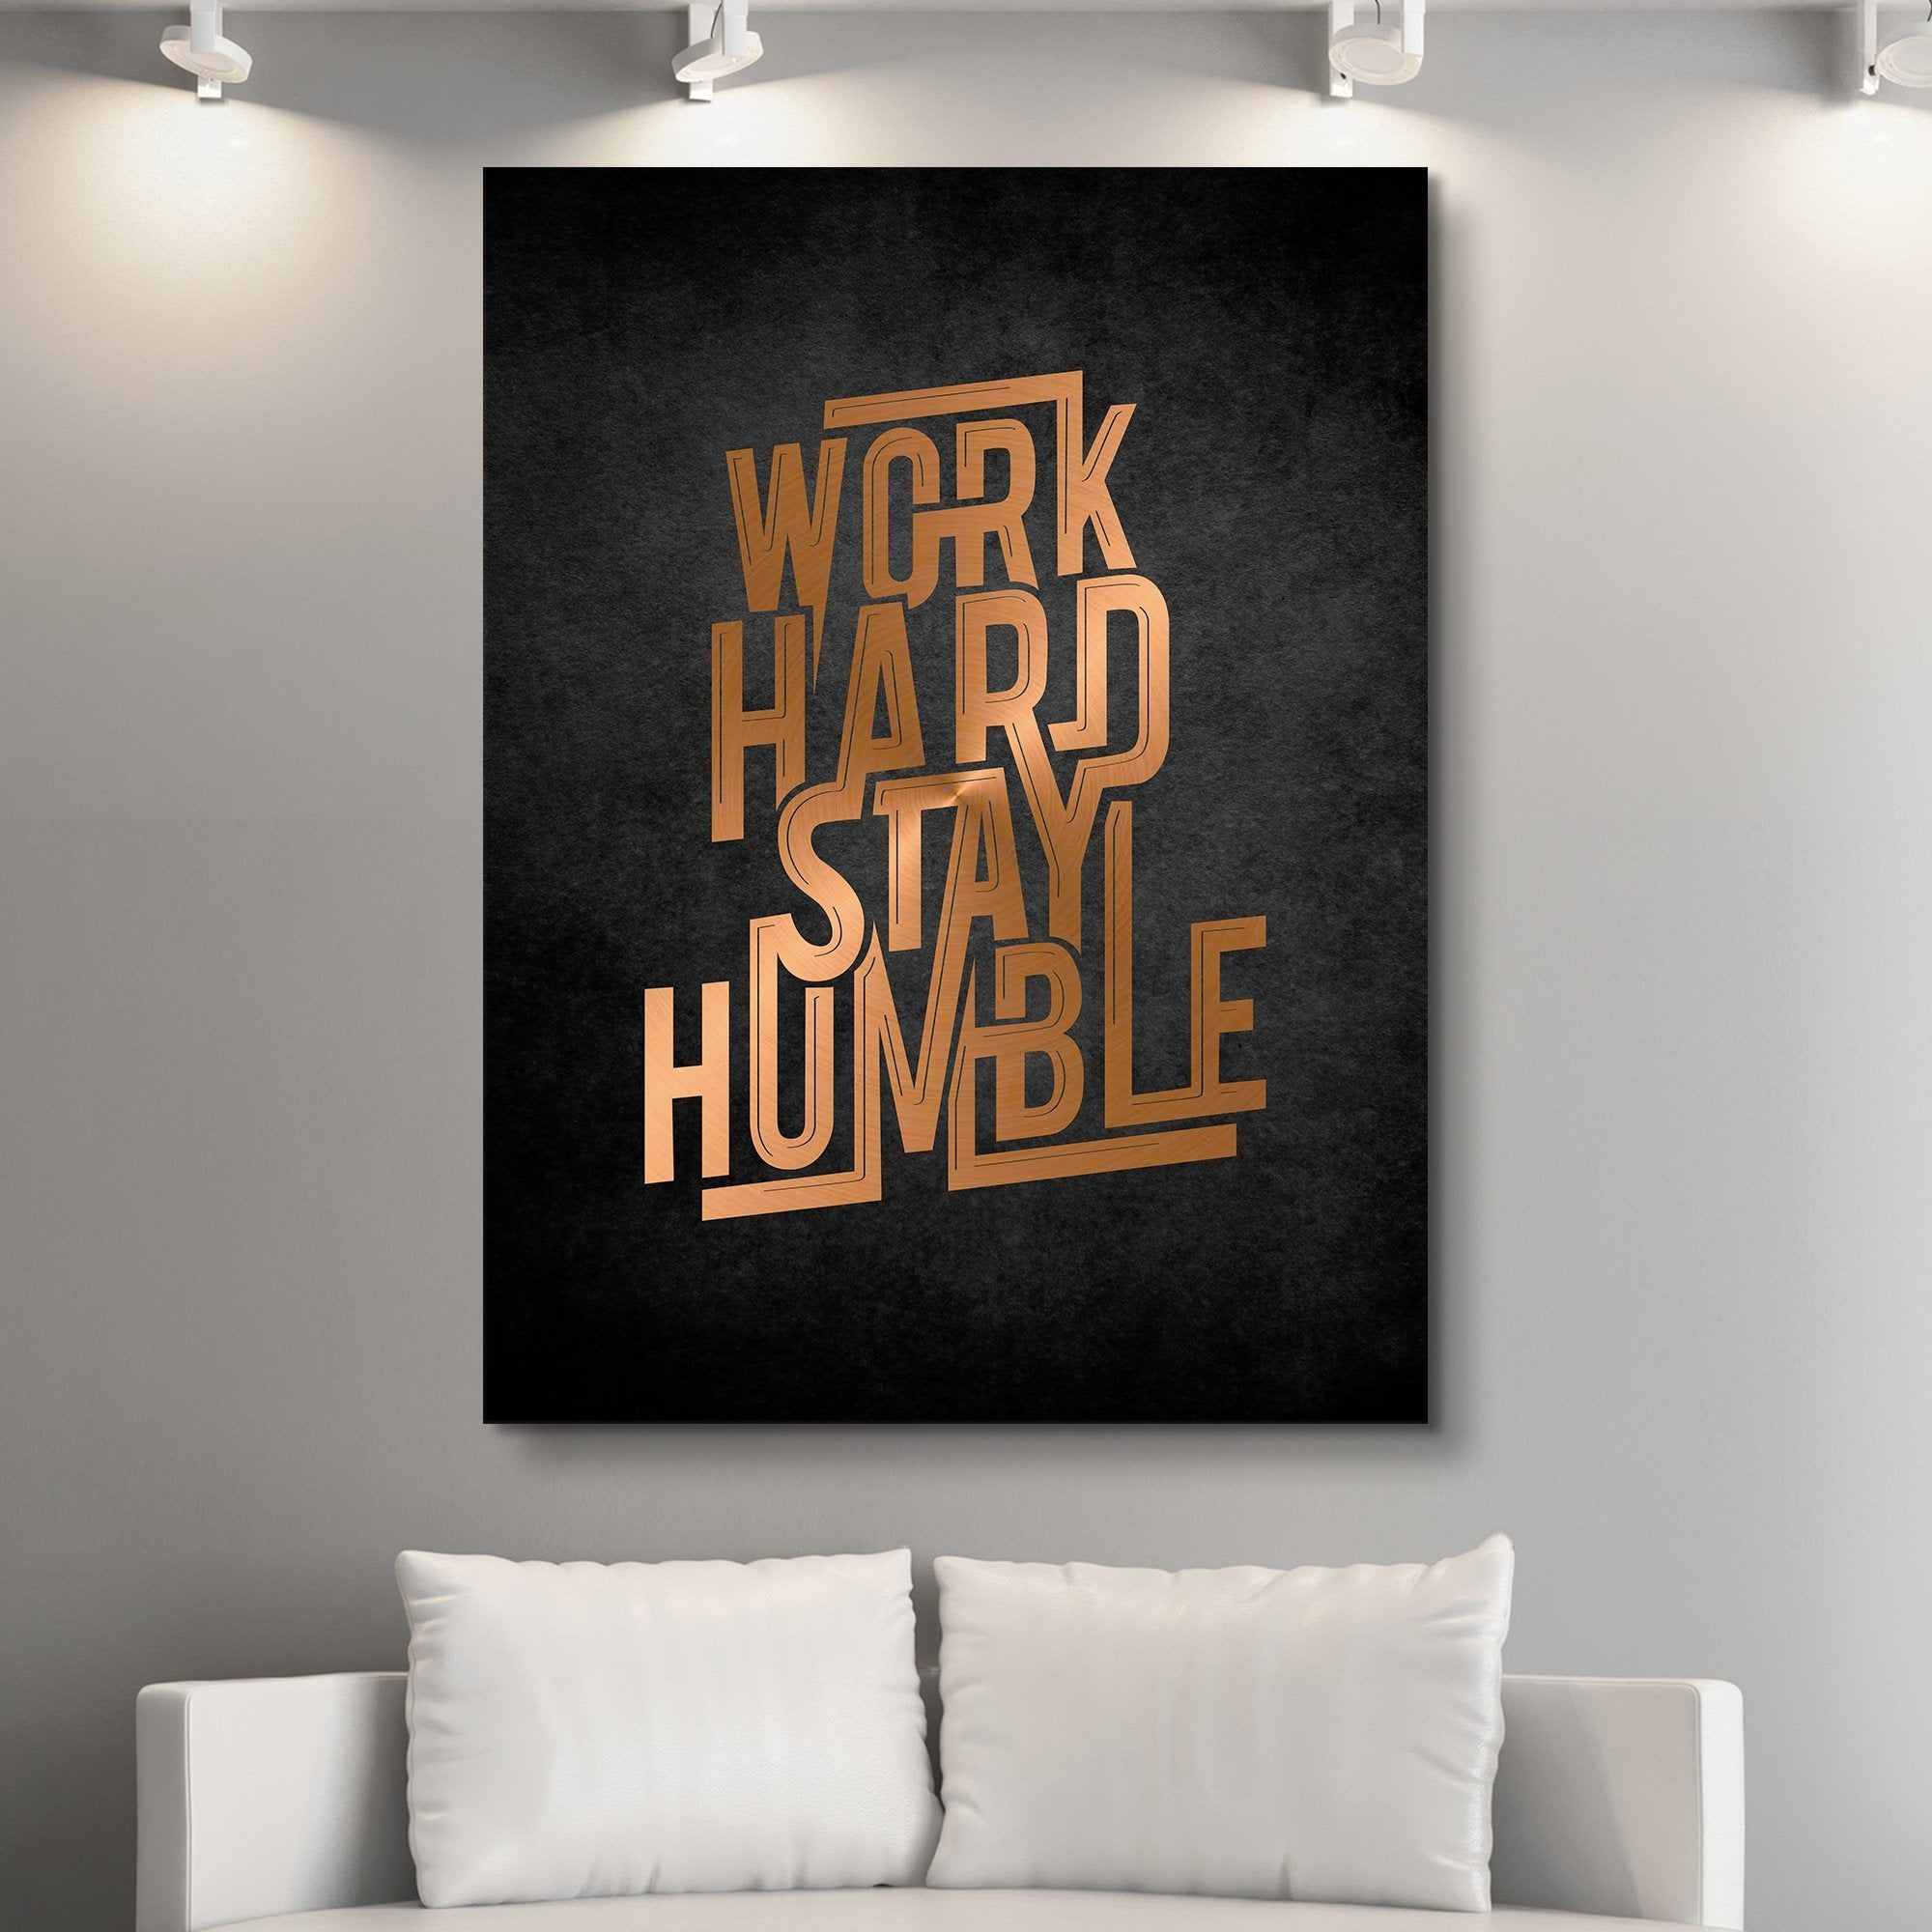 Work Hard, Stay Humble wall art